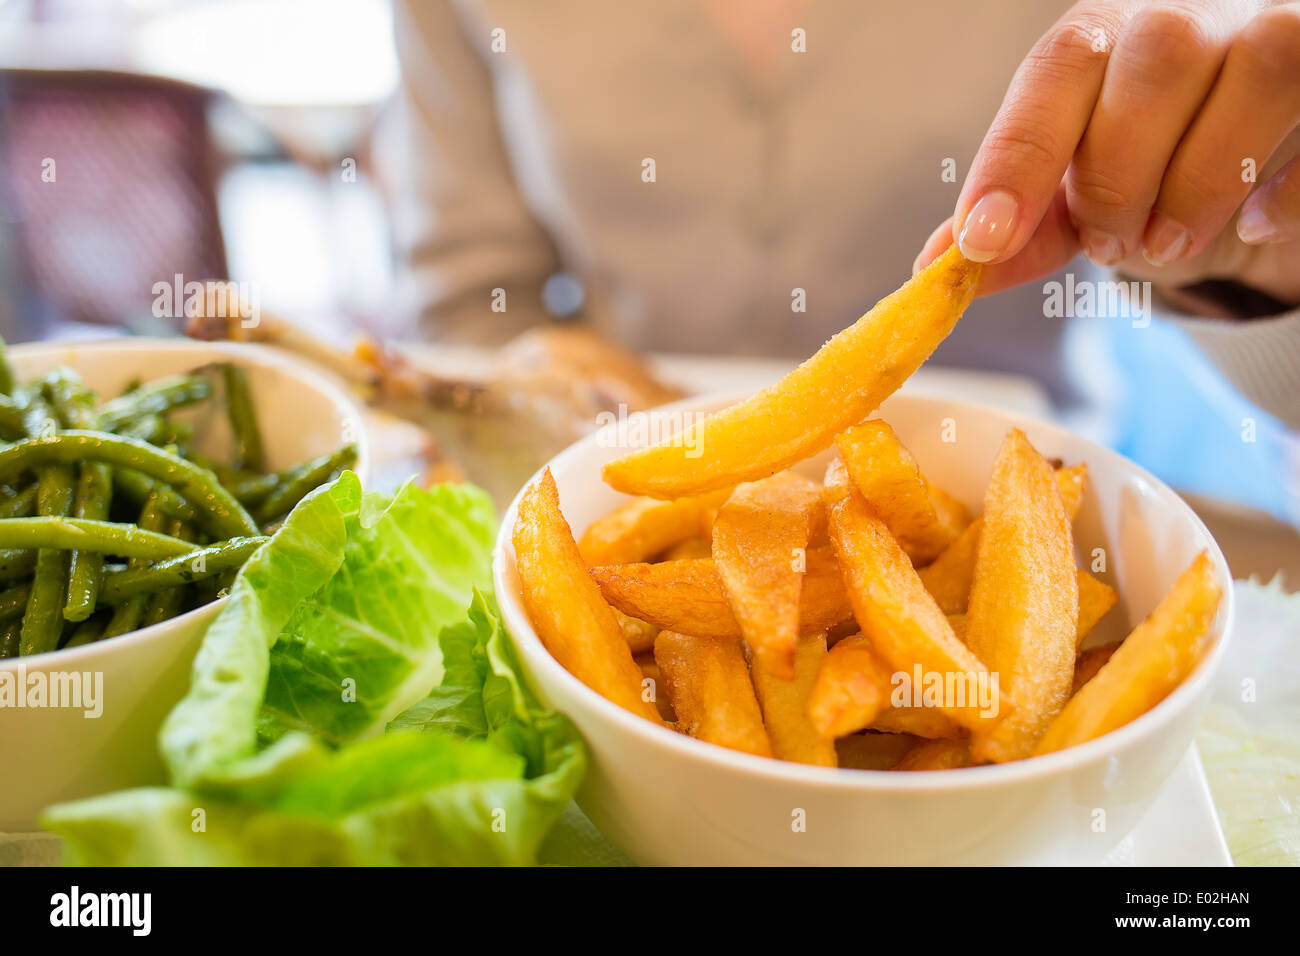 Femme de manger de la viande, close-up bar doigt Photo Stock